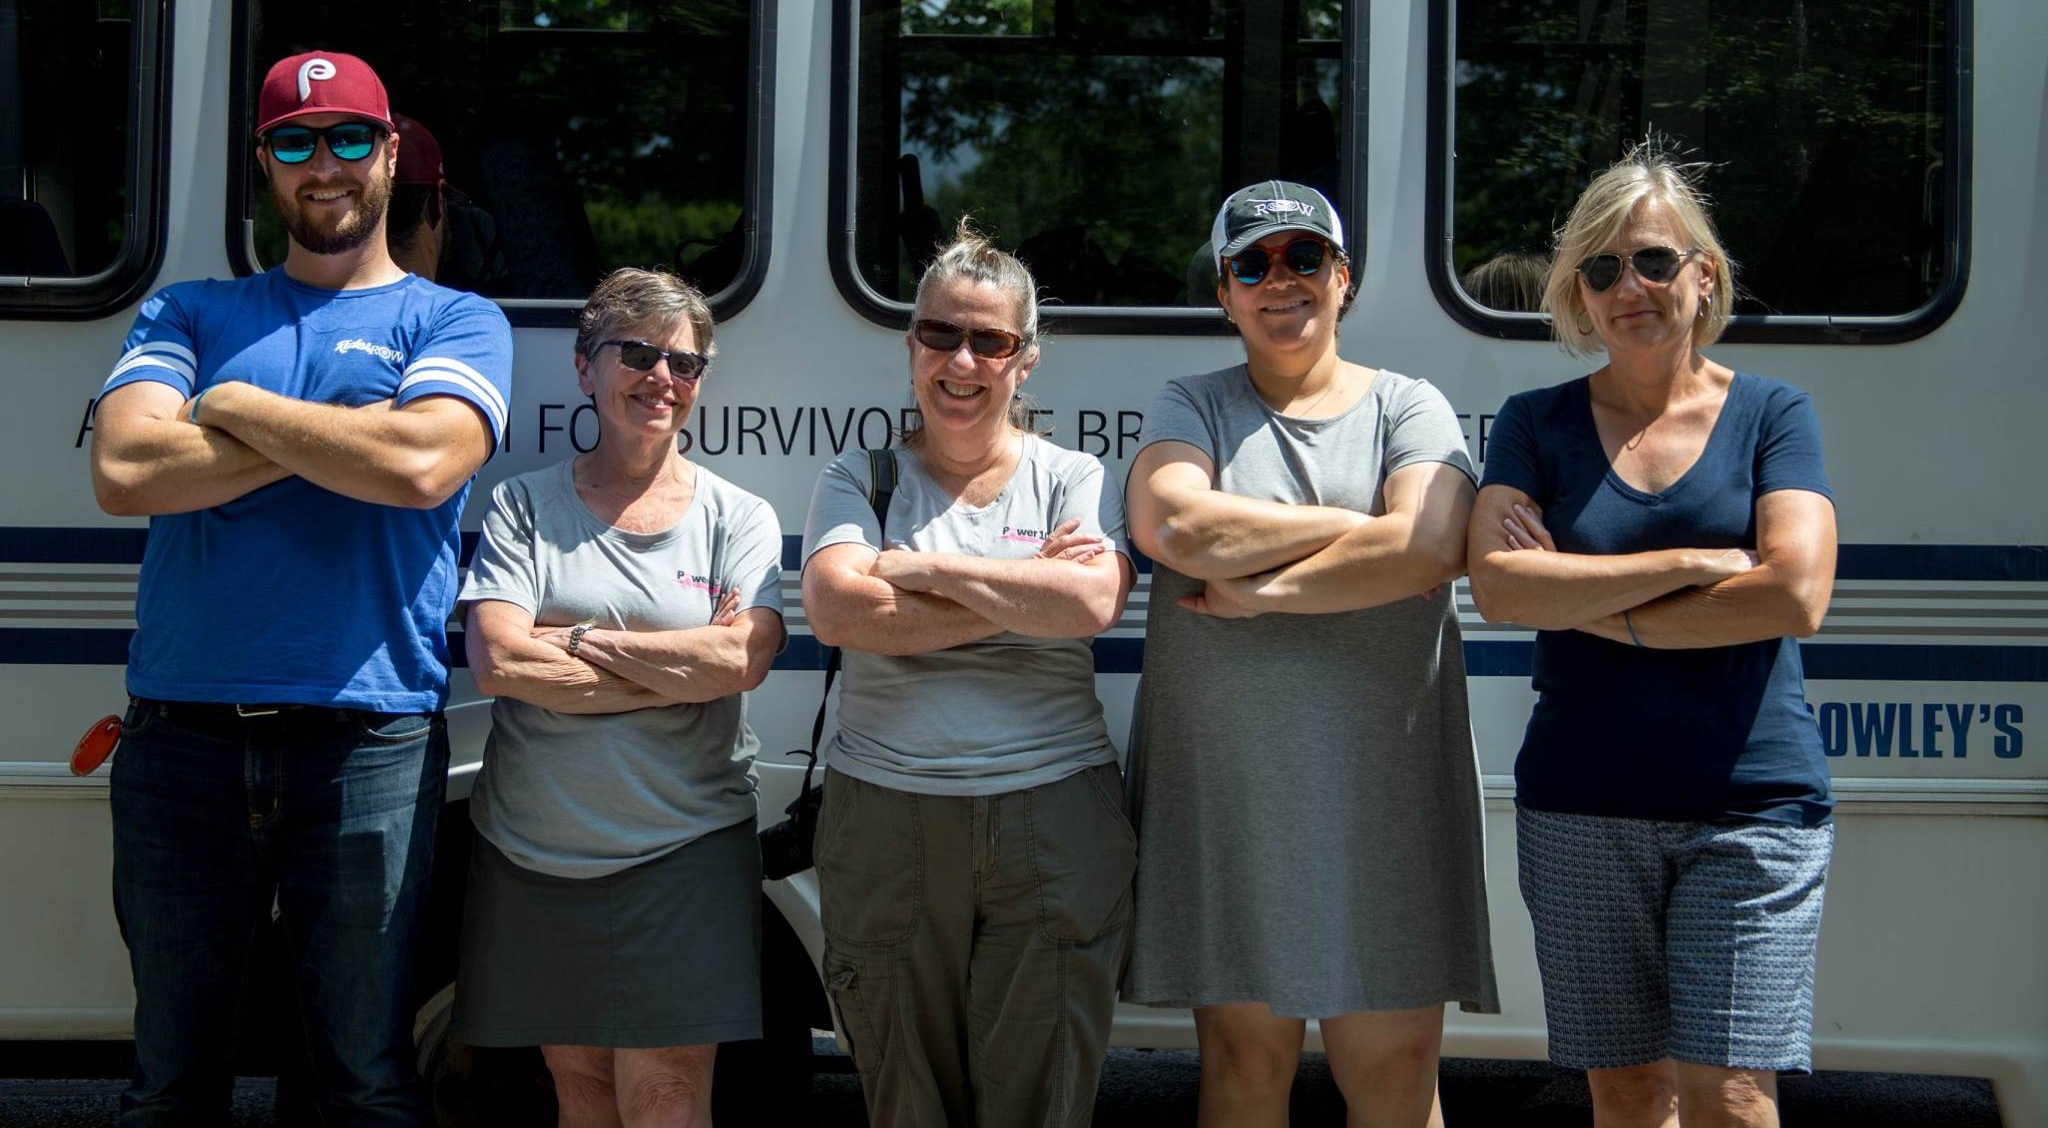 Step Six - Congratulations, and welcome to the Ride4ROW Team!Now it's time to start sharing your fundraising page and seeking support from your community.Need ideas? Check out the Ride4ROW Fundraising Page for tips and tricks on how to get started.